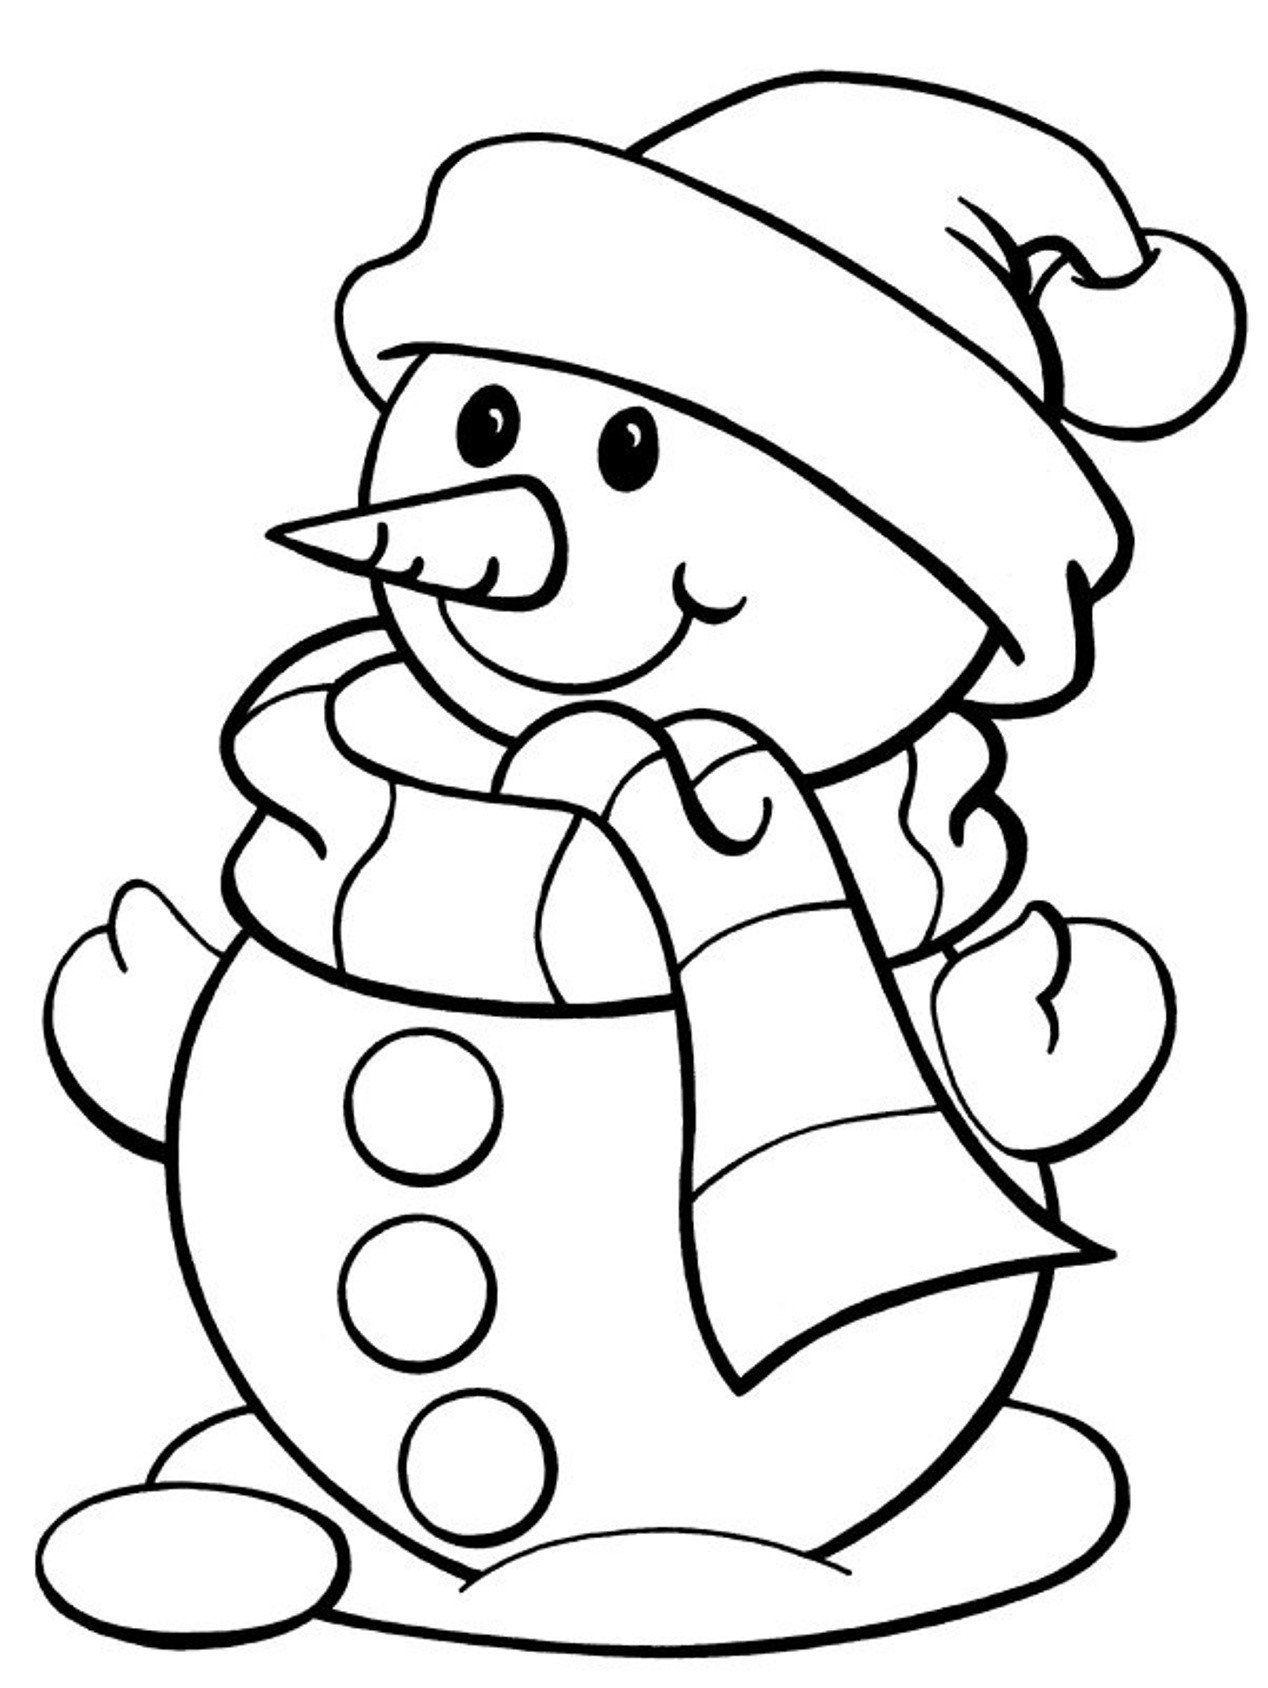 Winter Coloring Page For Adults Coloring Pages Winter Clipart For Kids In 2020 Printable Christmas Coloring Pages Free Christmas Coloring Pages Snowman Coloring Pages